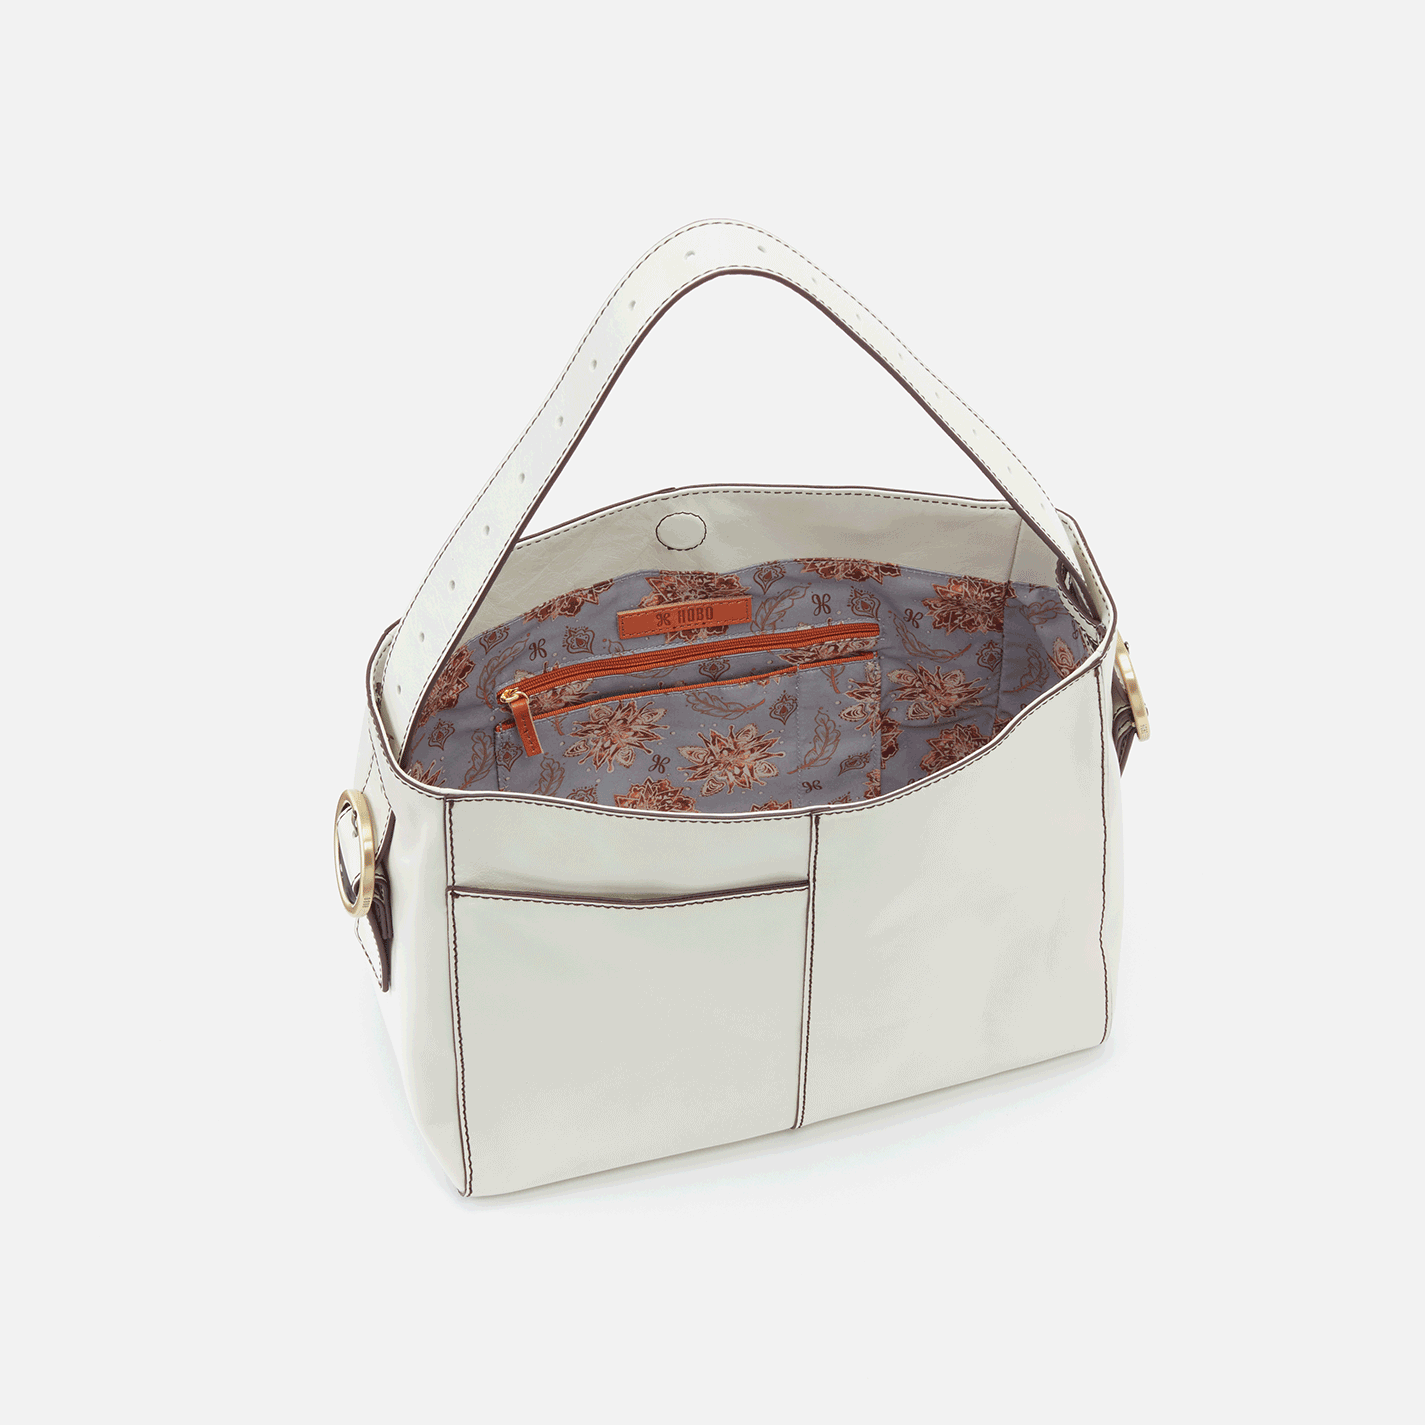 Hobo Render Shoulder Bag